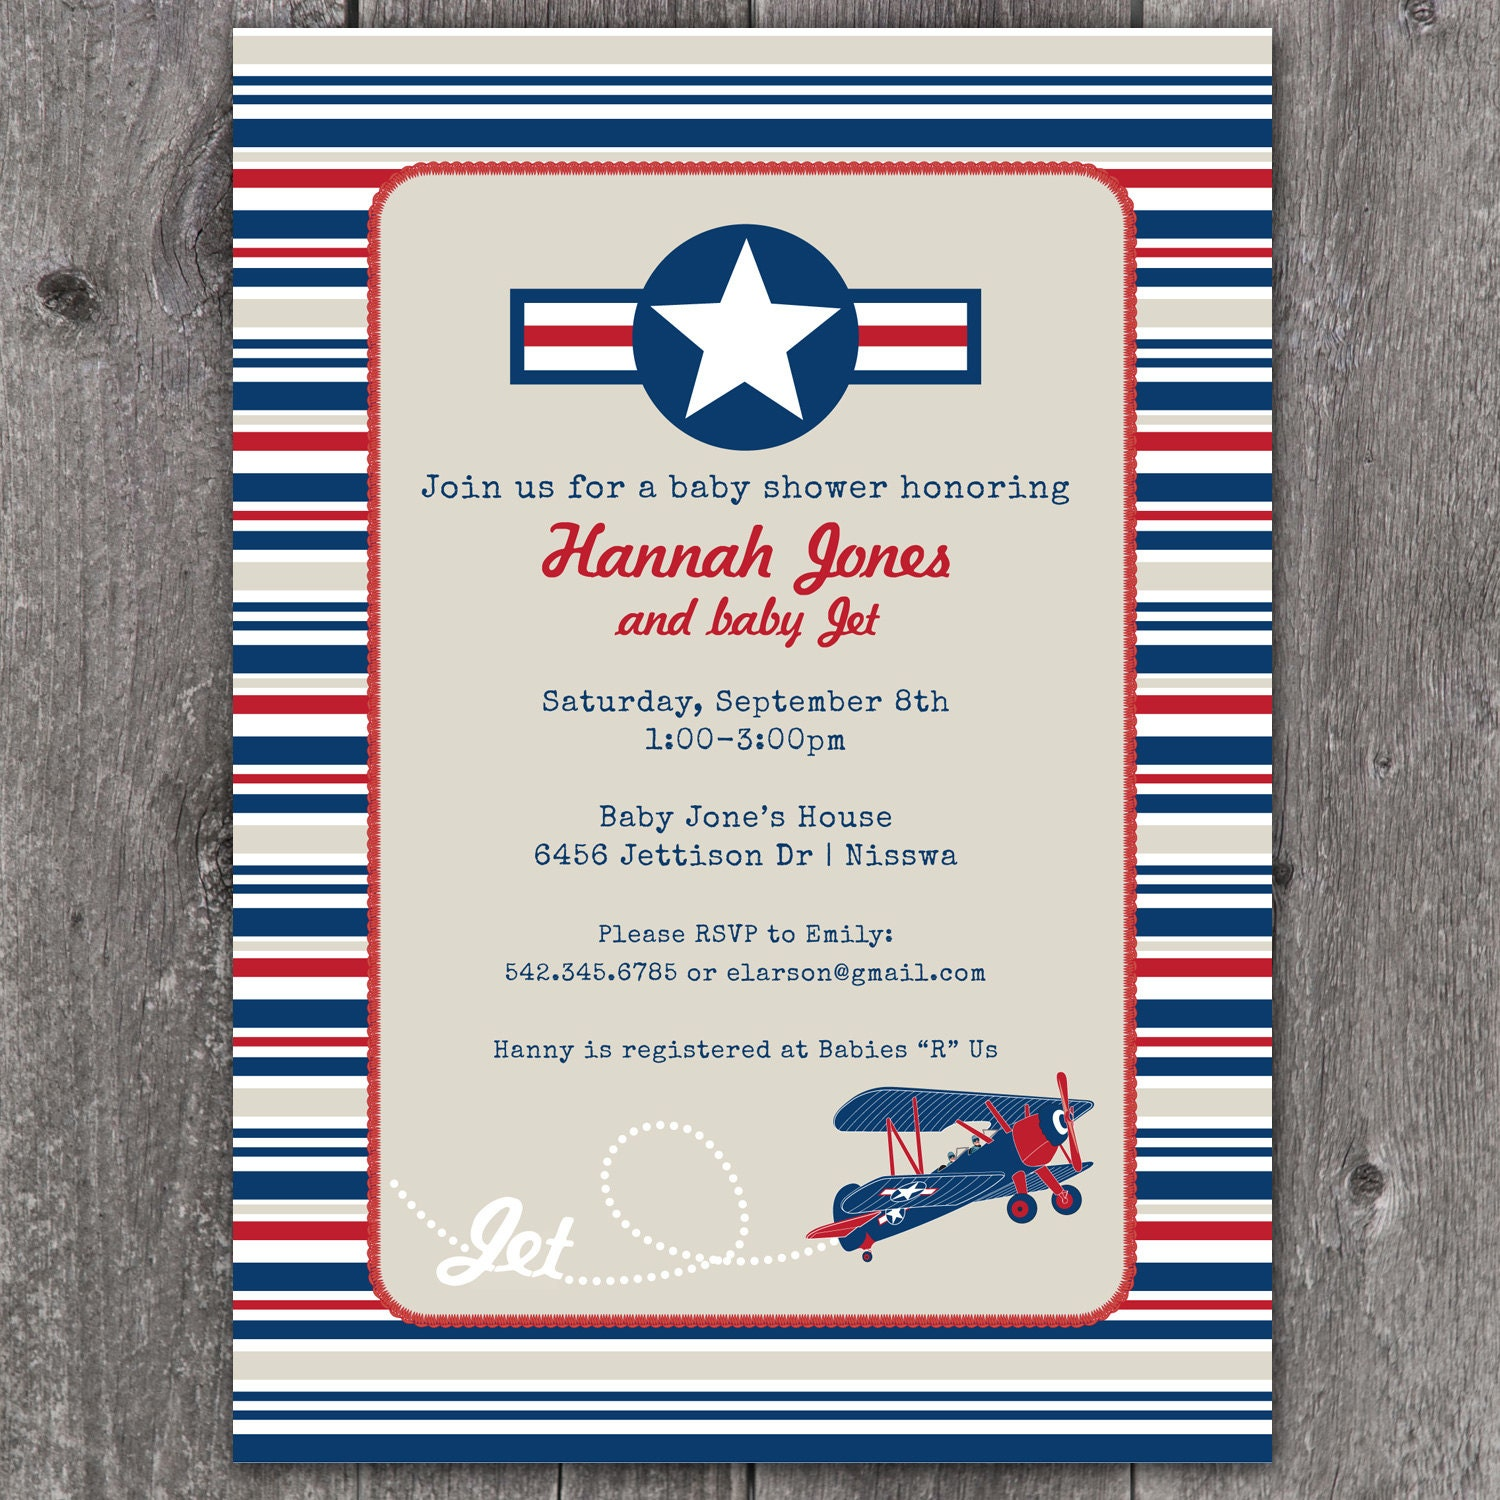 Airplane Invitations for amazing invitation layout